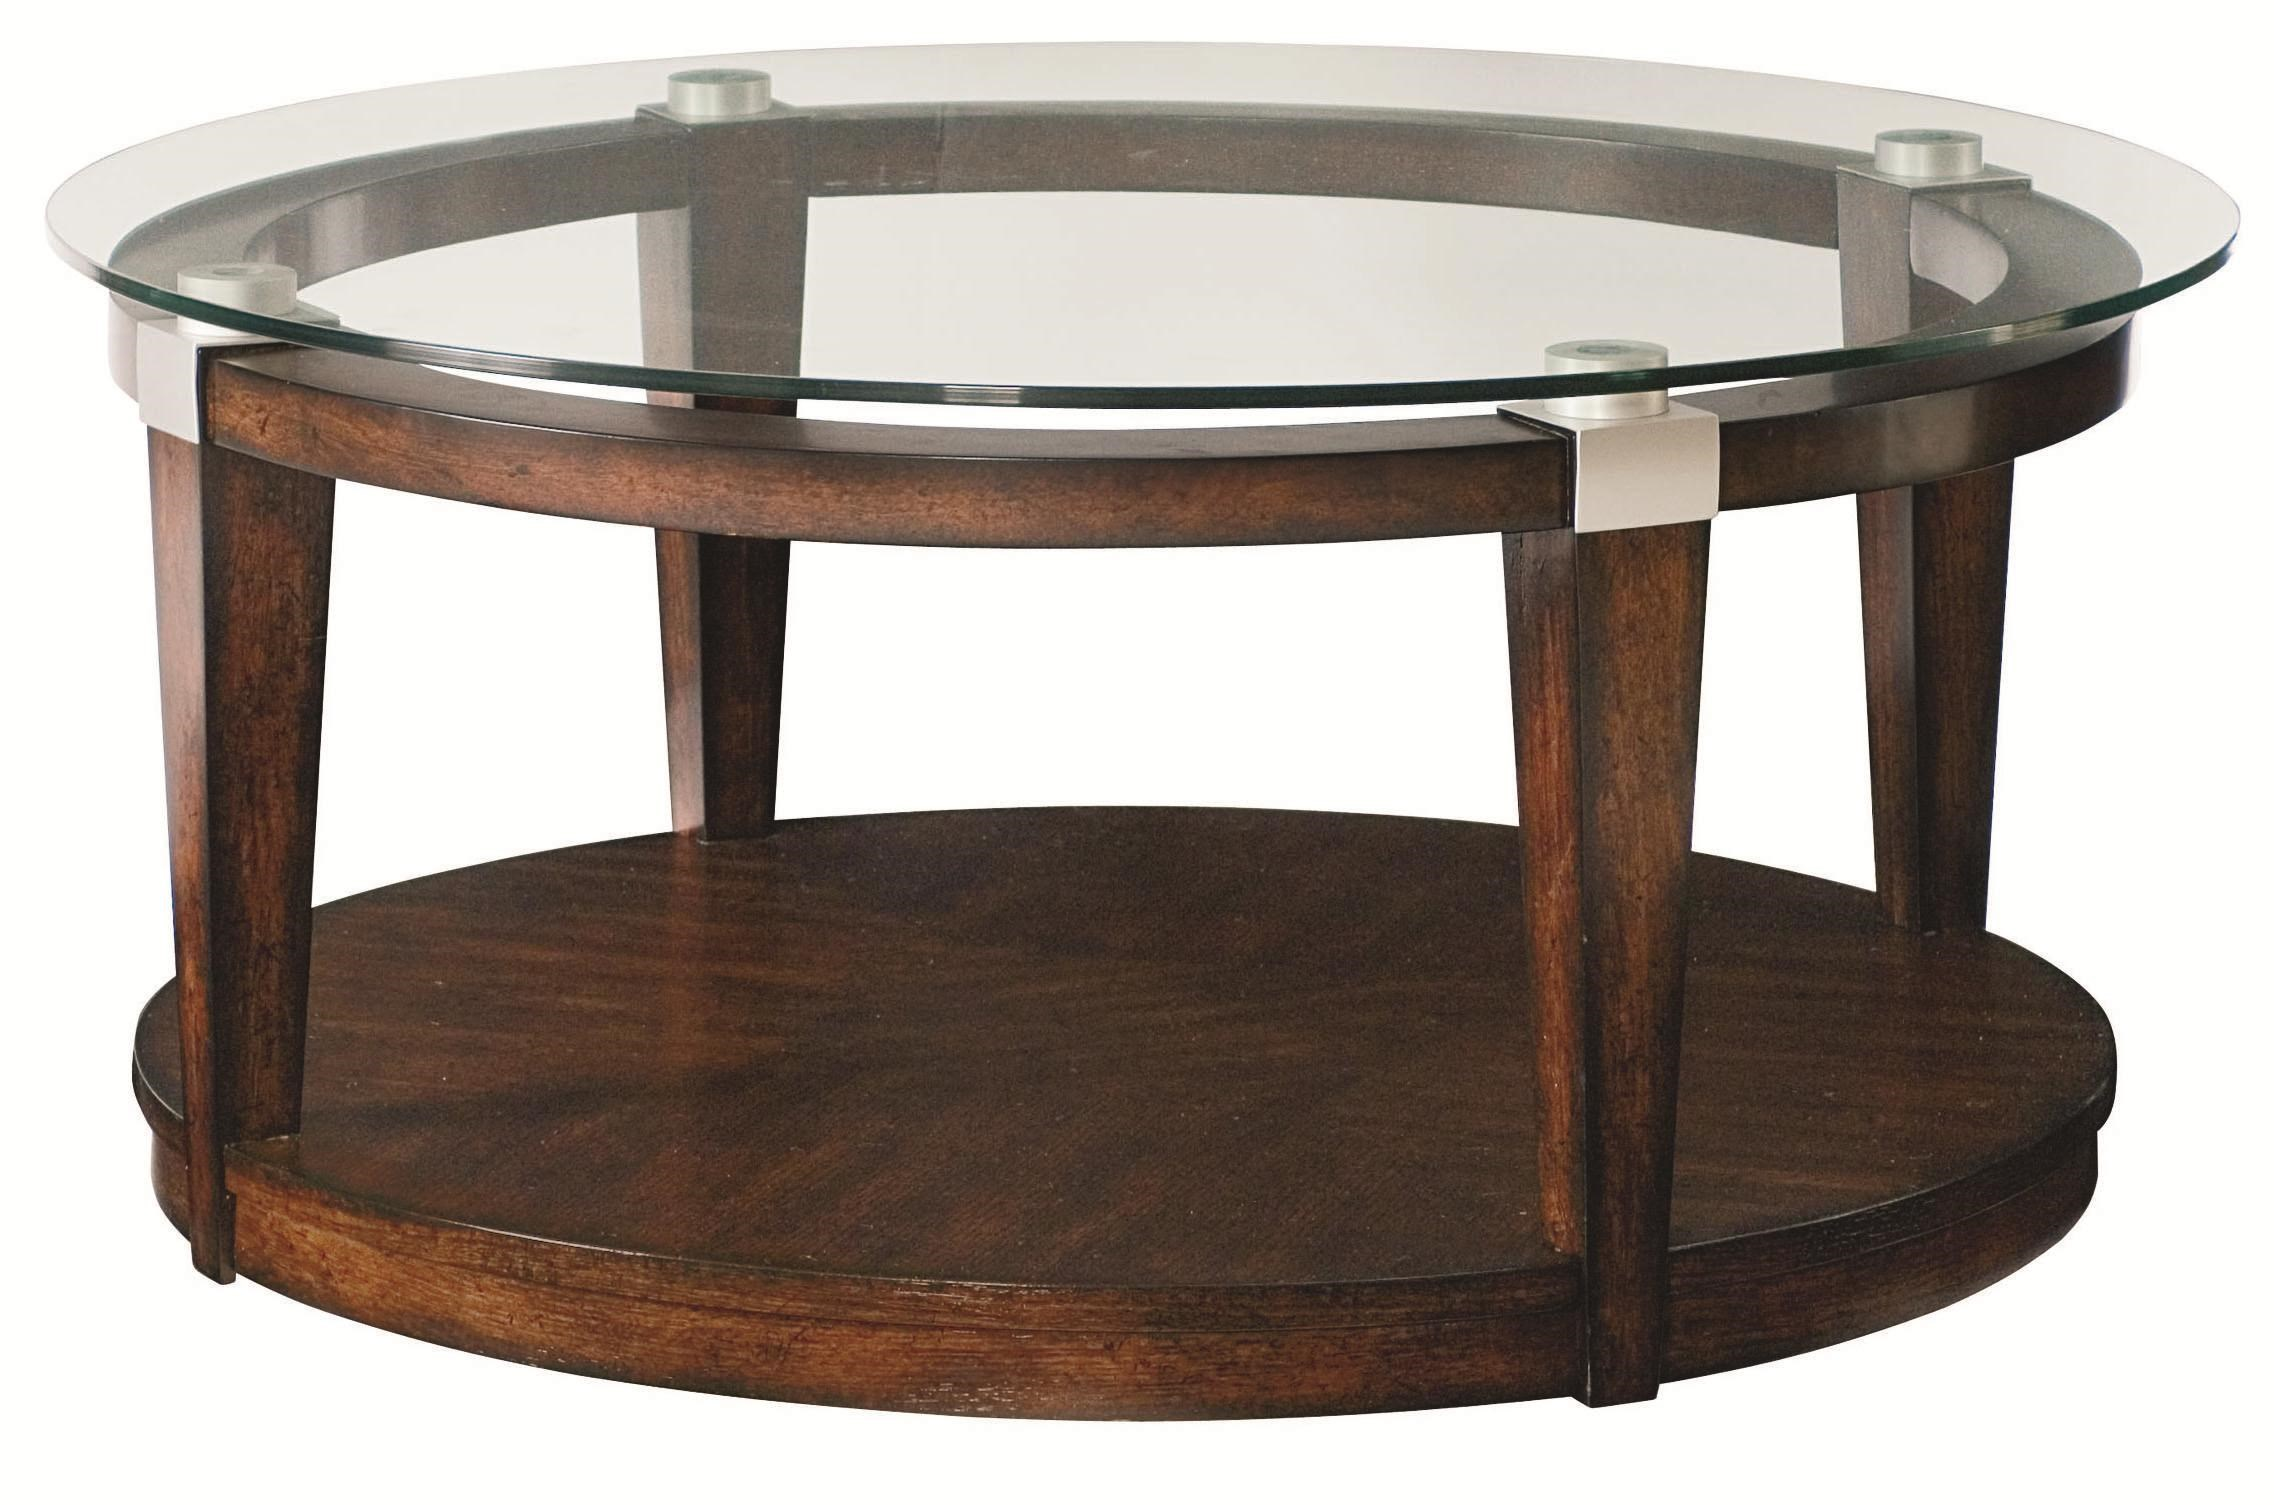 Hammary Solitaire Contemporary Round Coffee Table With Glass Top   Belfort  Furniture   Cocktail Or Coffee Table